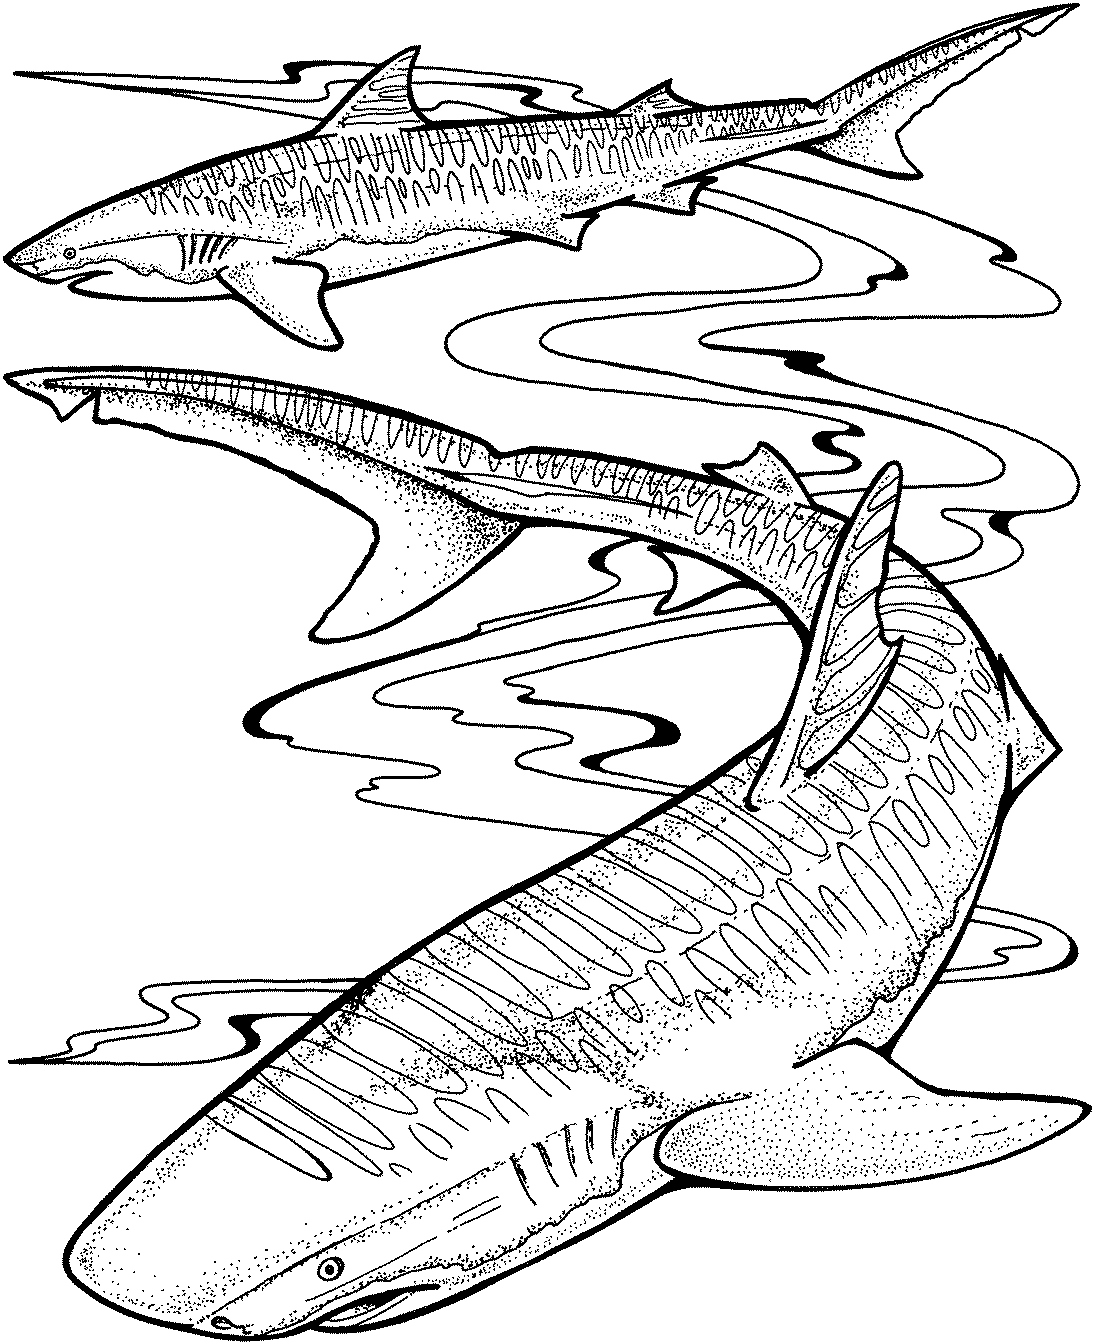 great white shark coloring pages online | Great White Shark Coloring Pages to Print | Free Coloring ...